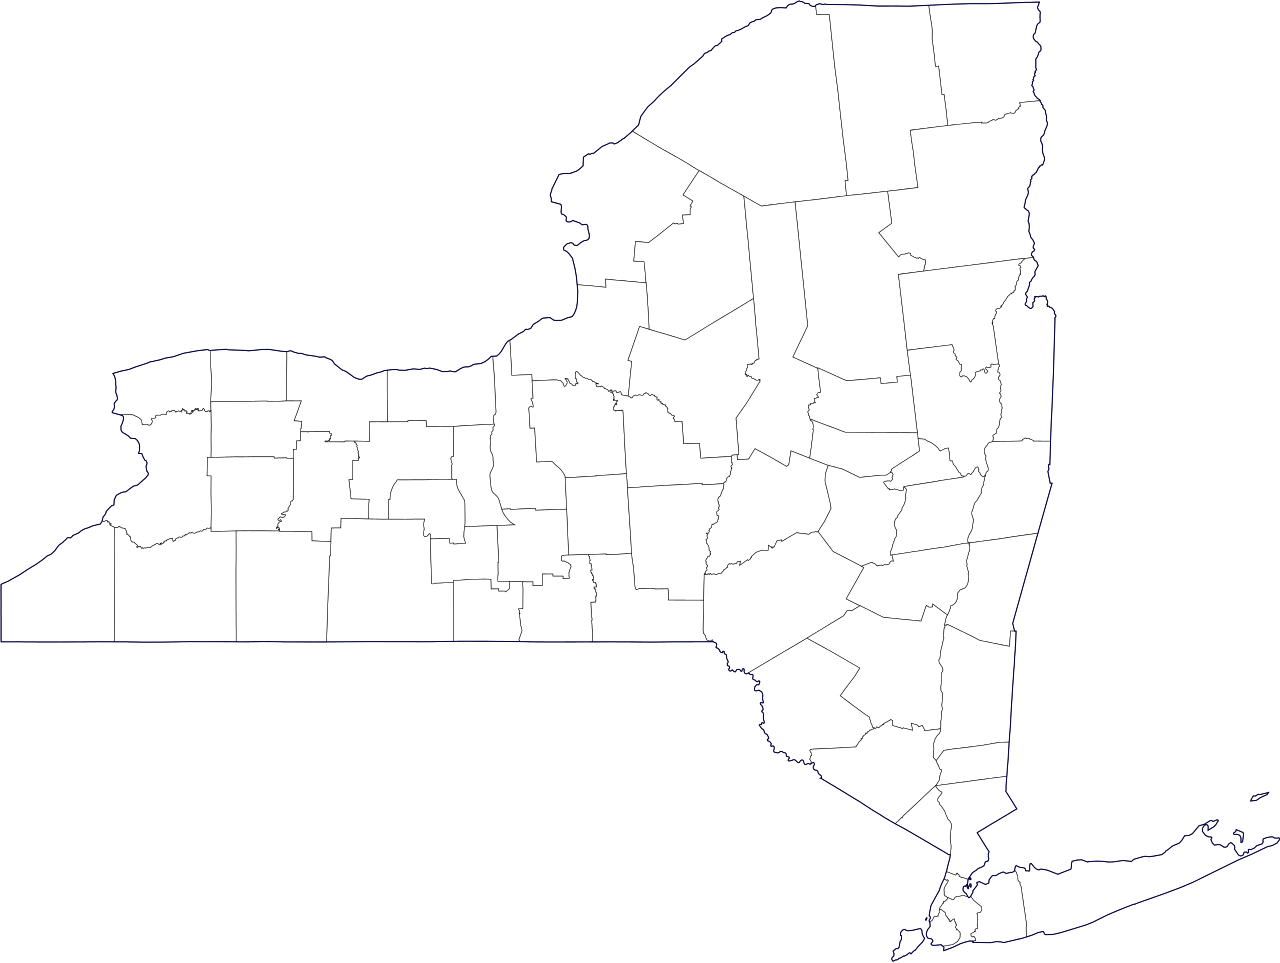 New york png state. File map of county